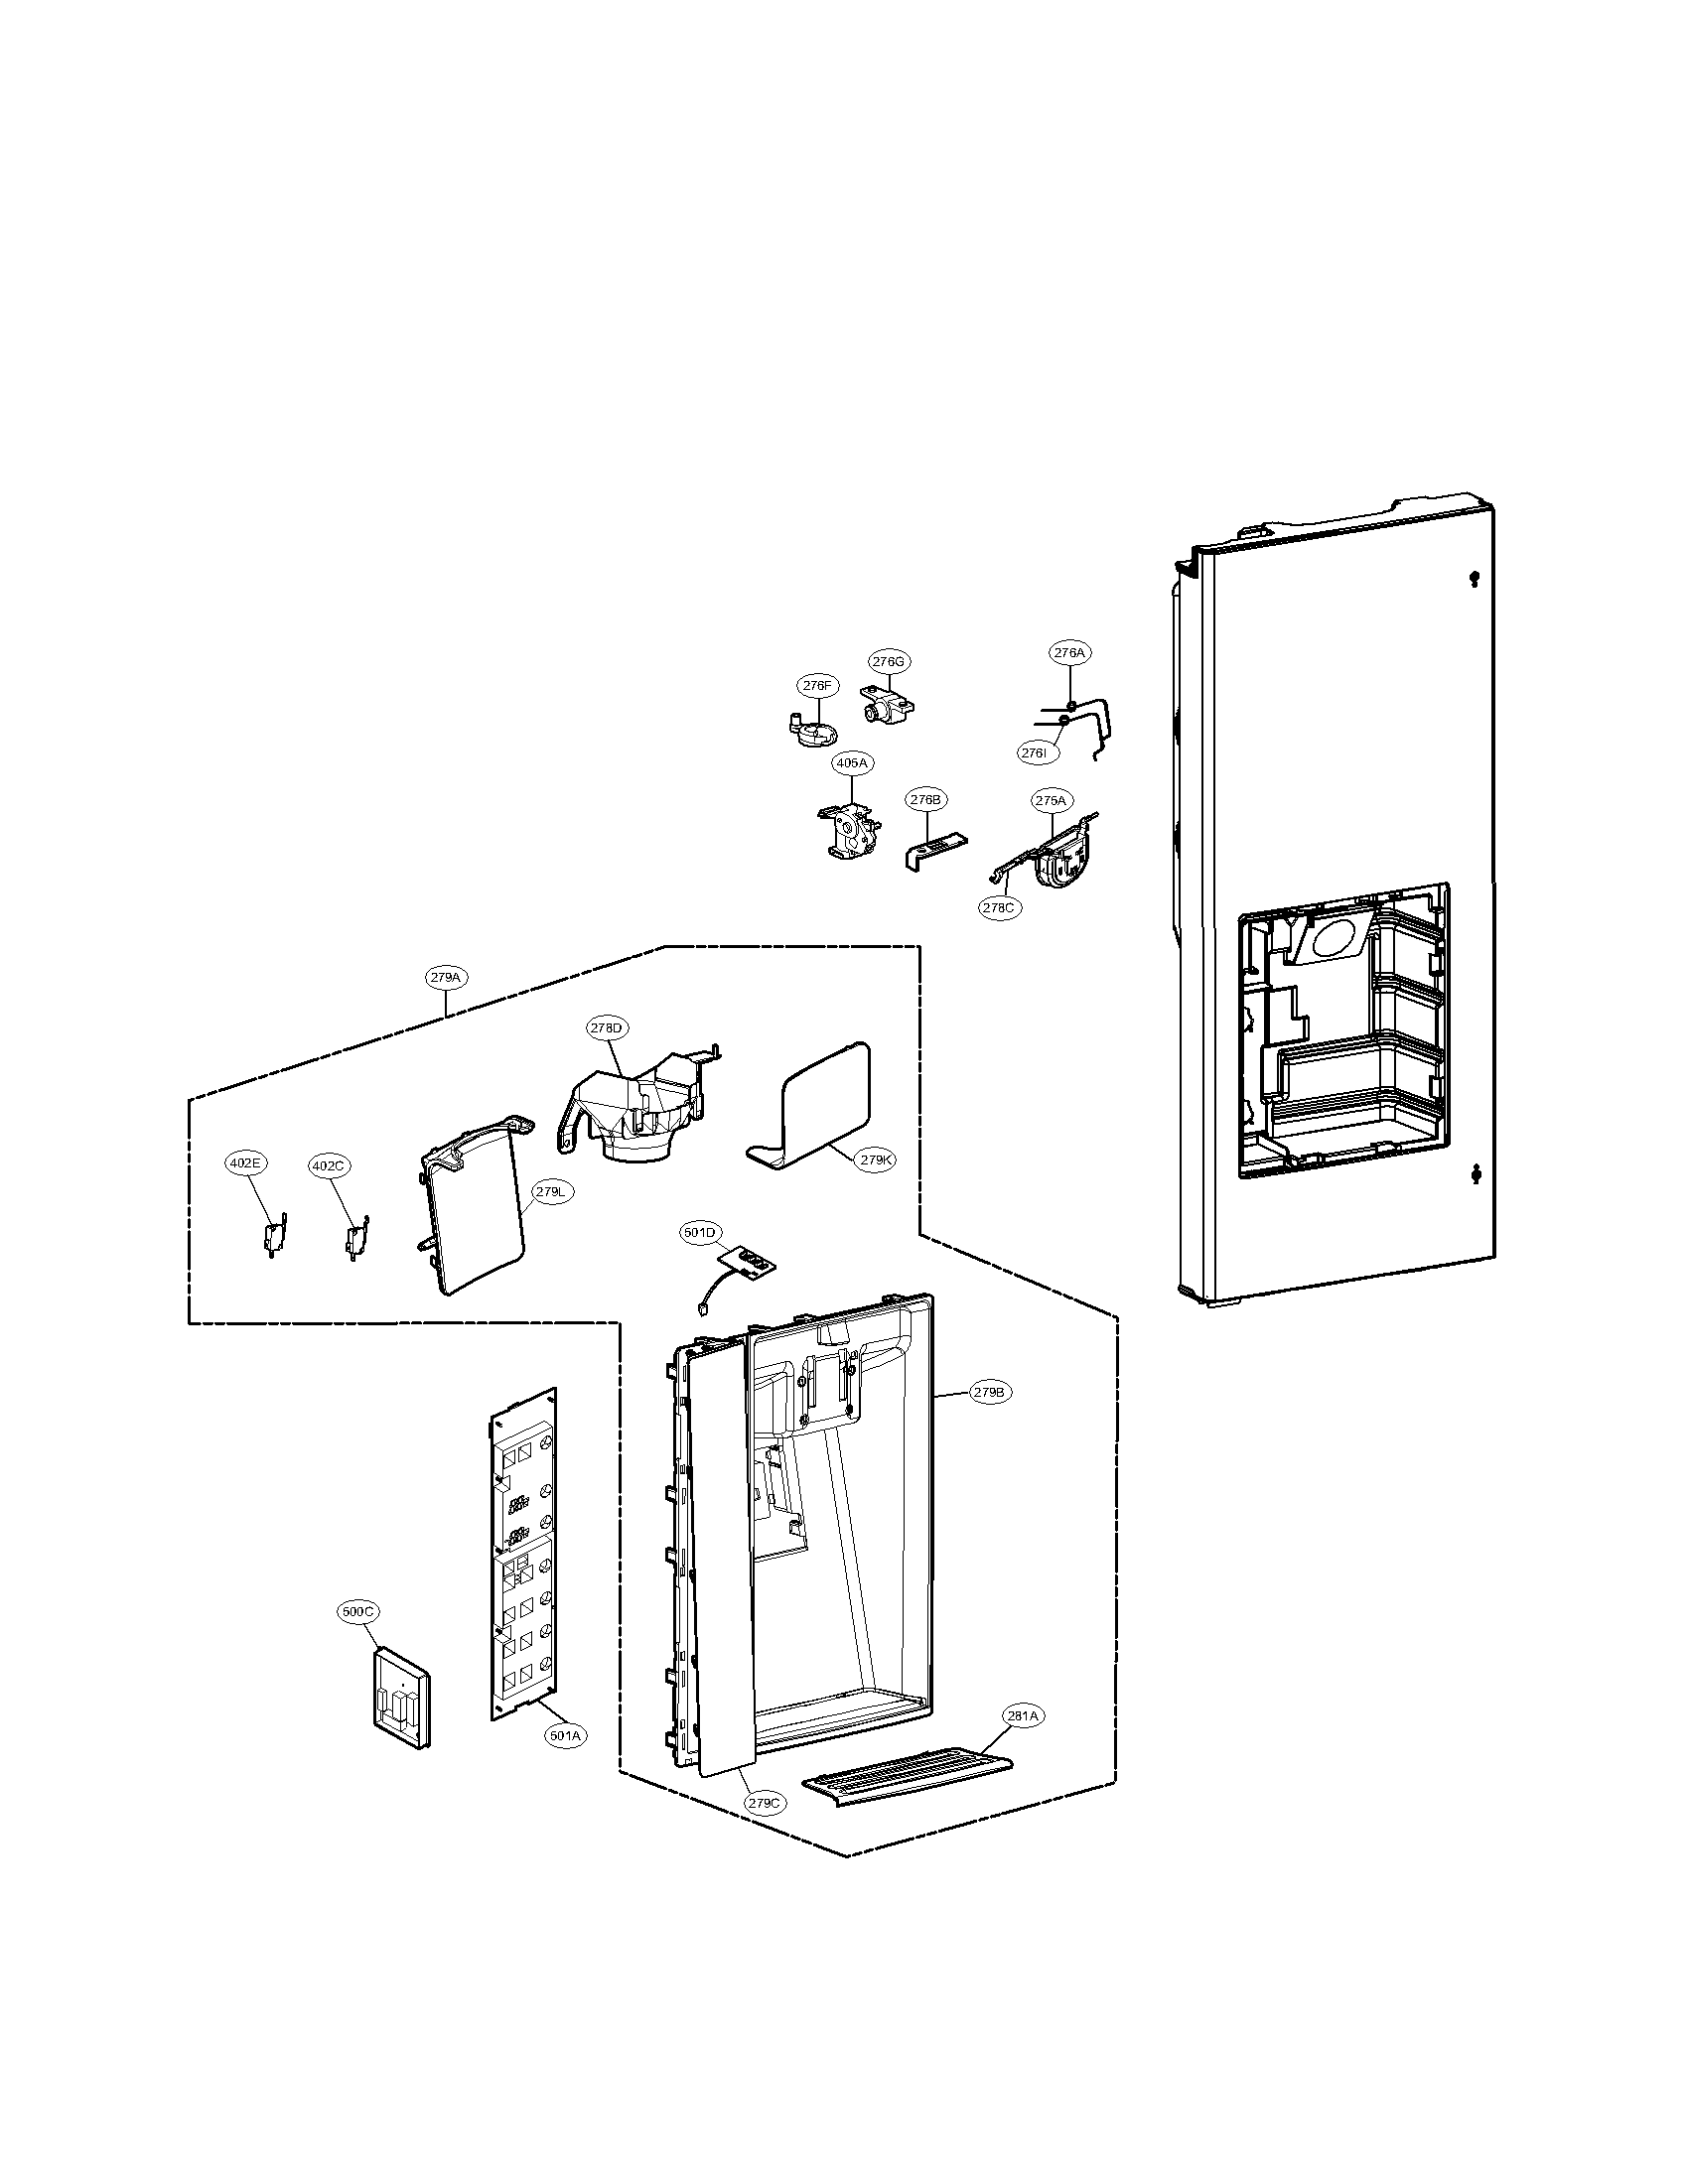 Lg model LFX31925SW bottom-mount refrigerator genuine parts